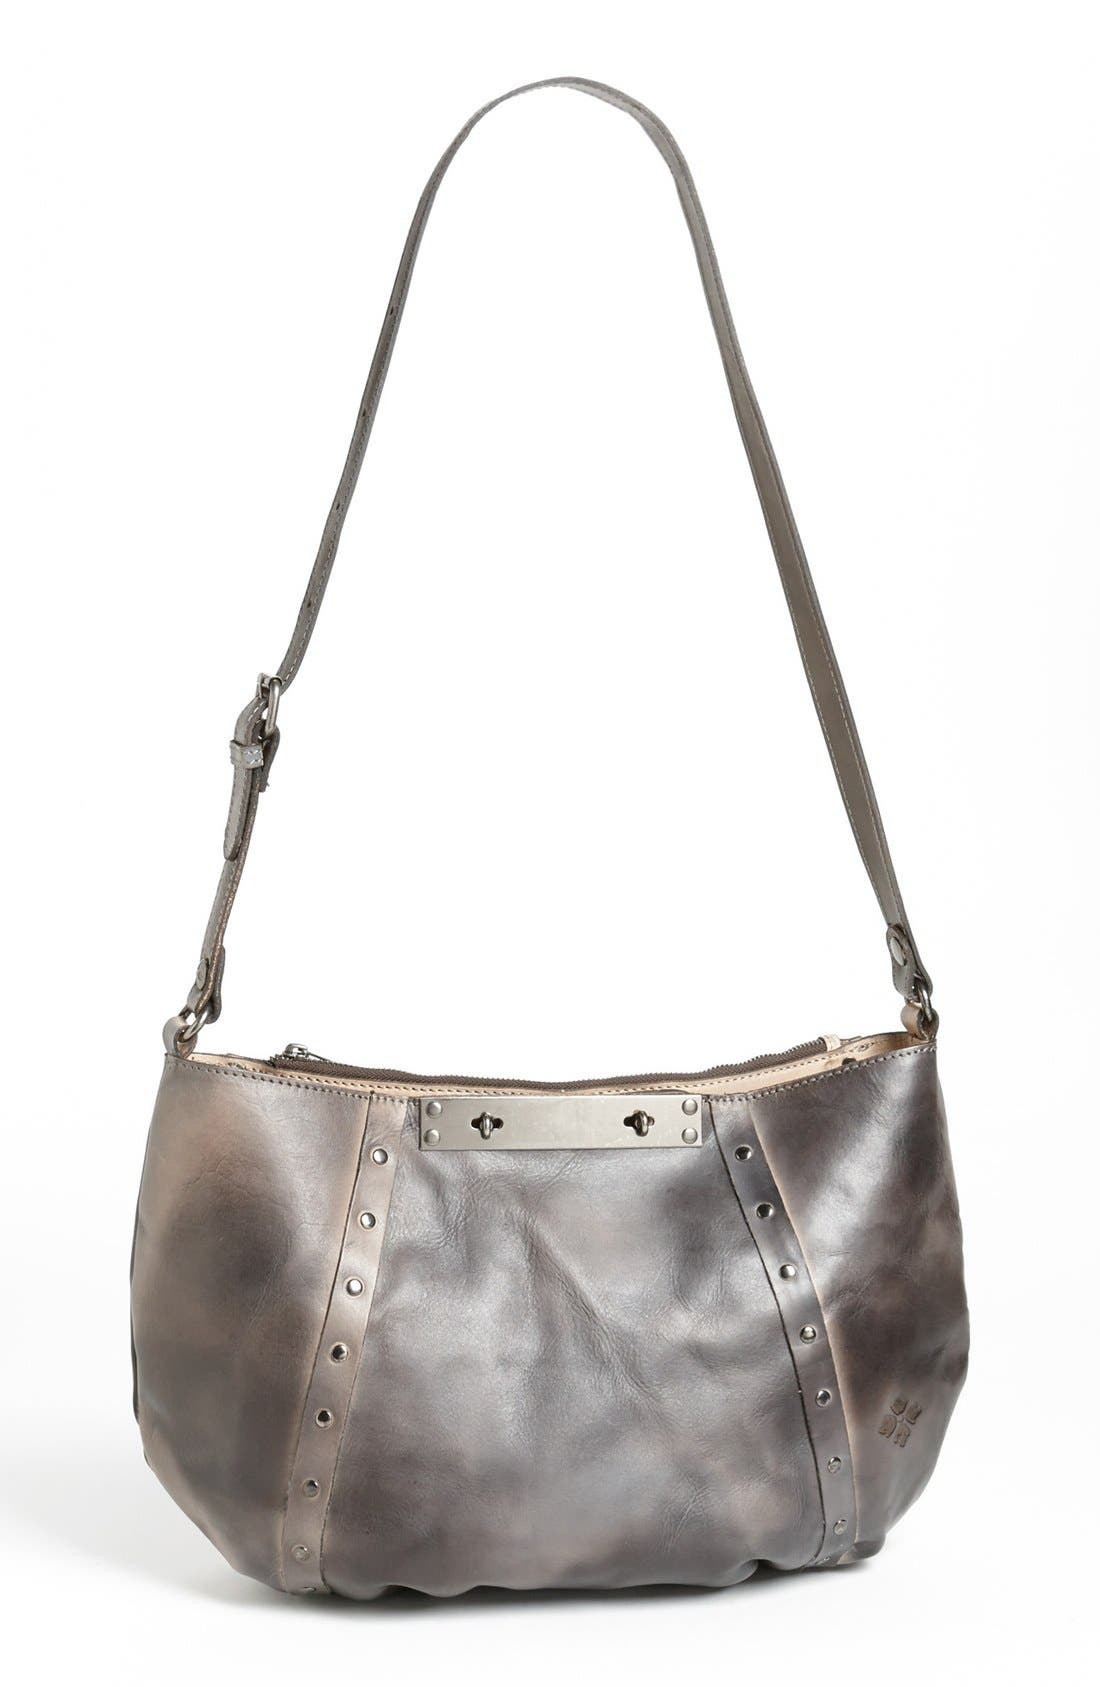 Alternate Image 1 Selected - Patricia Nash 'Bucciano' Leather Shoulder Bag